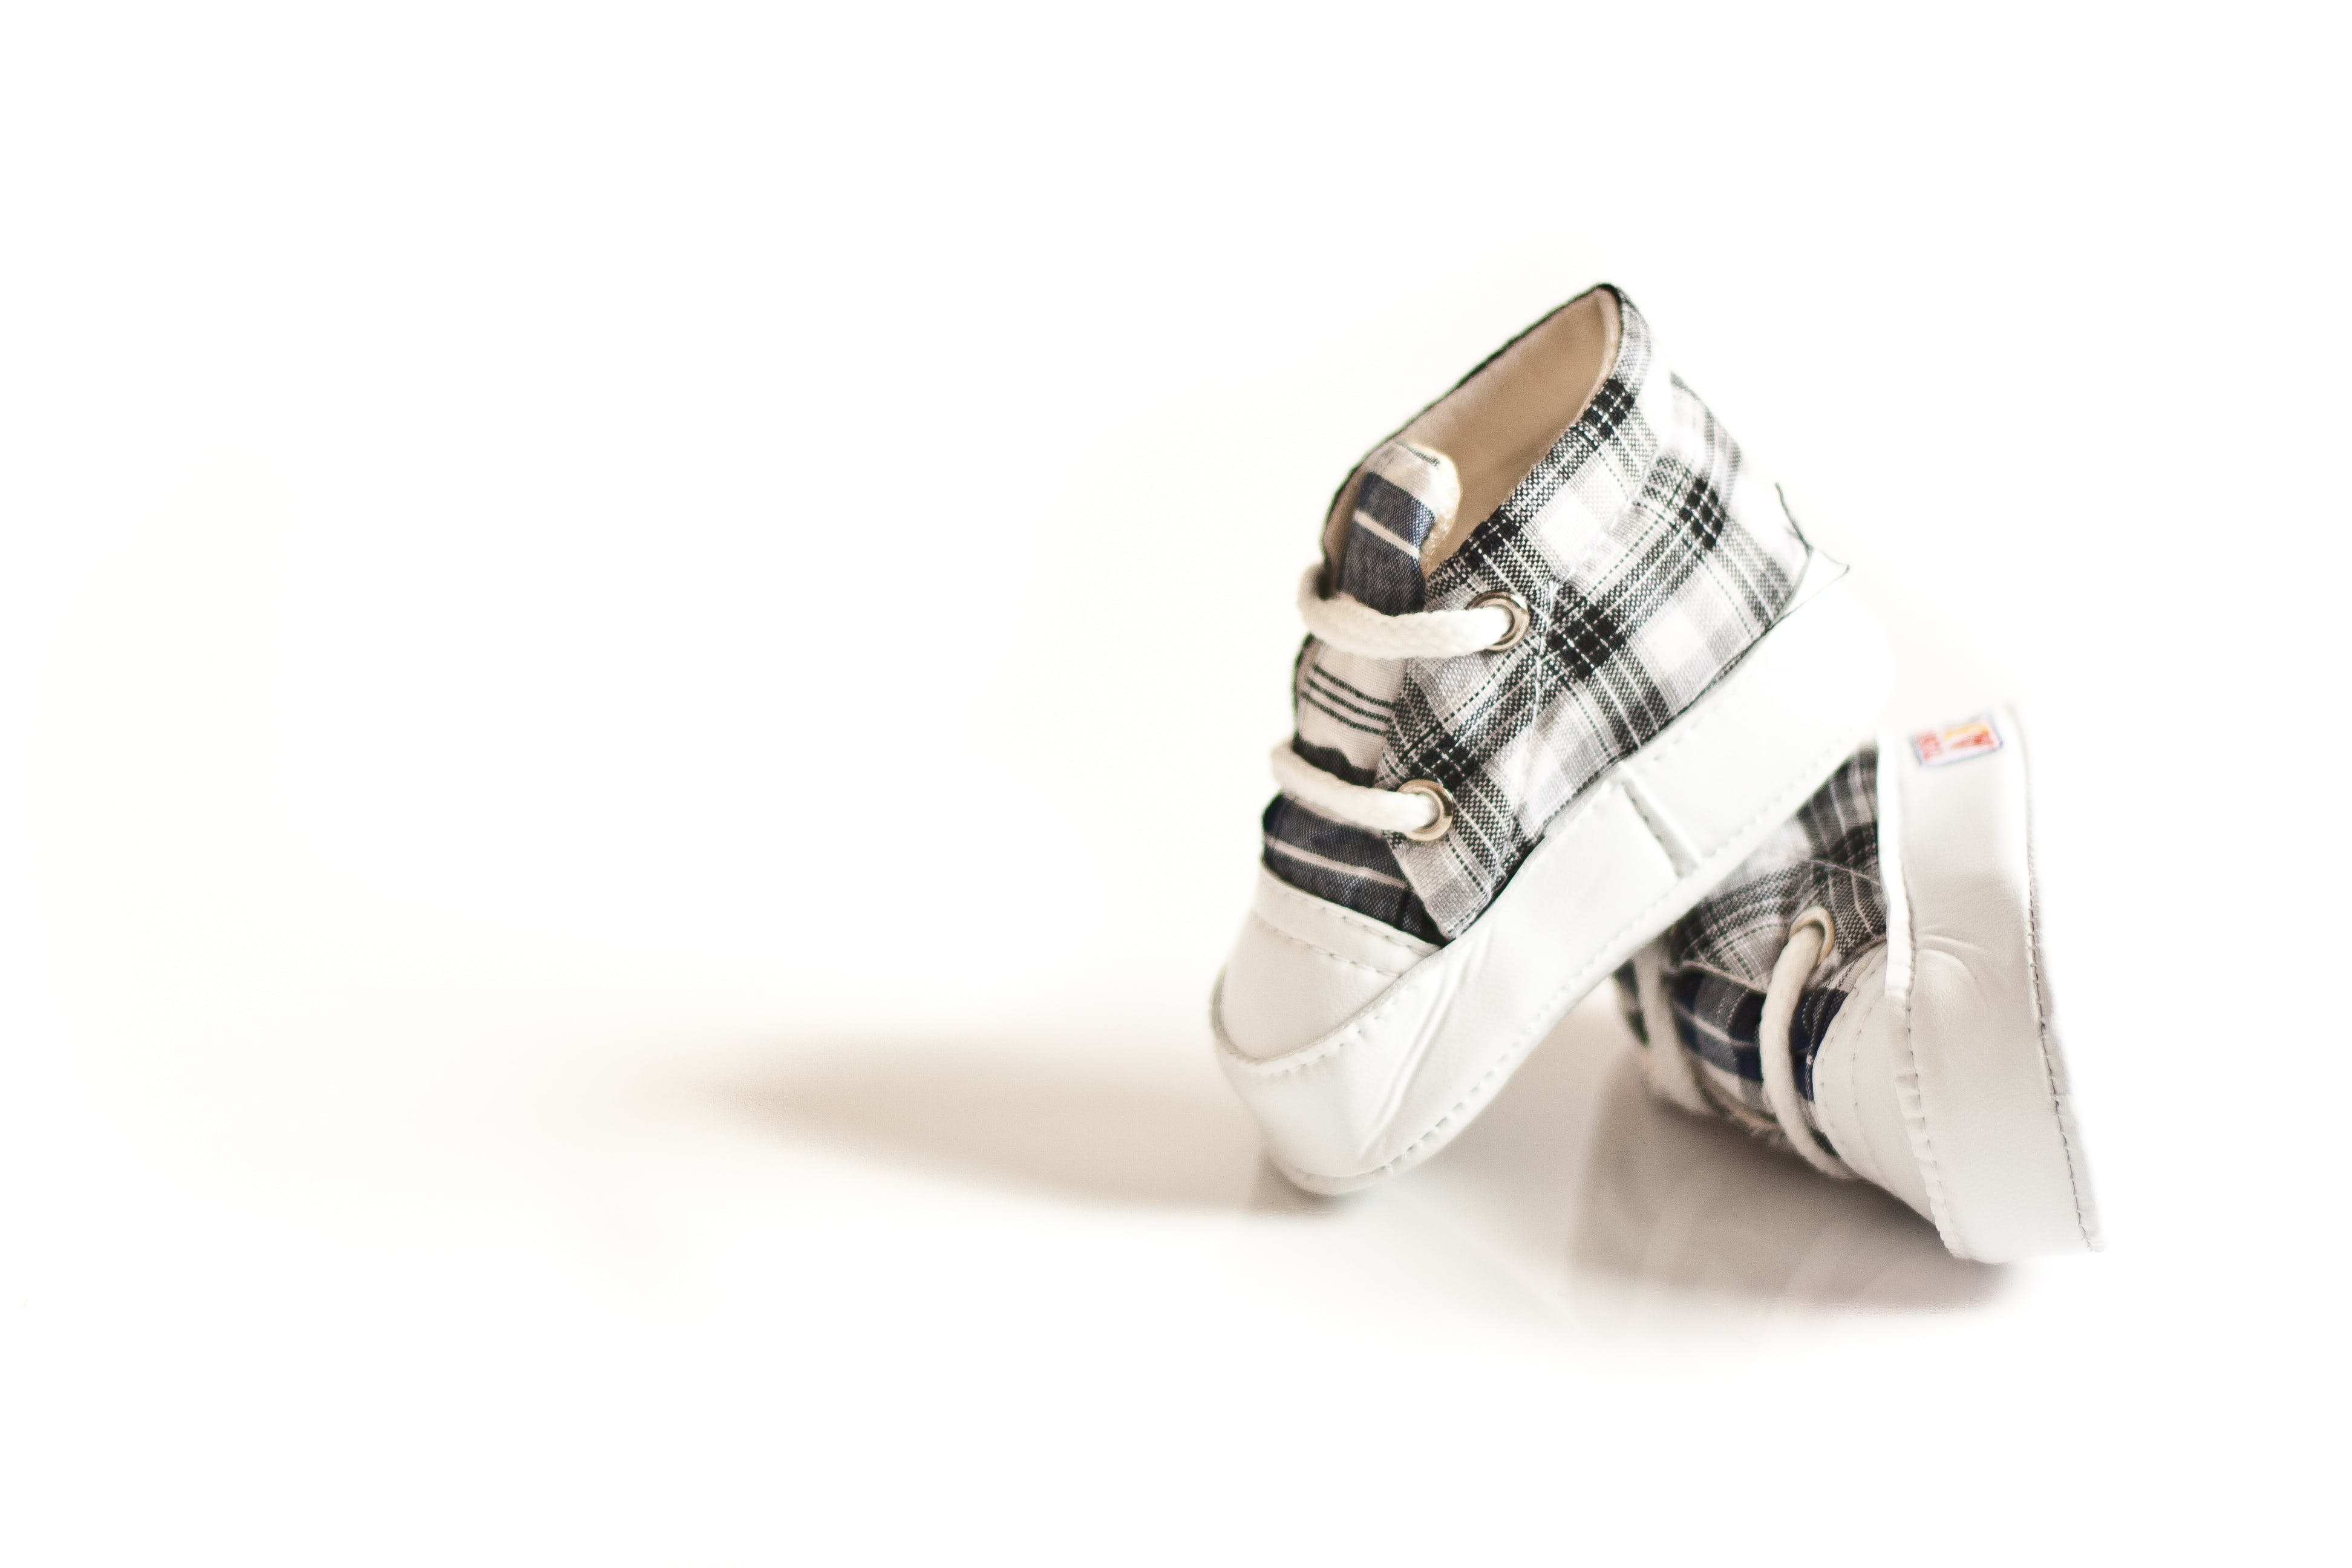 Pair of Toddler's White-and-gray Shoes